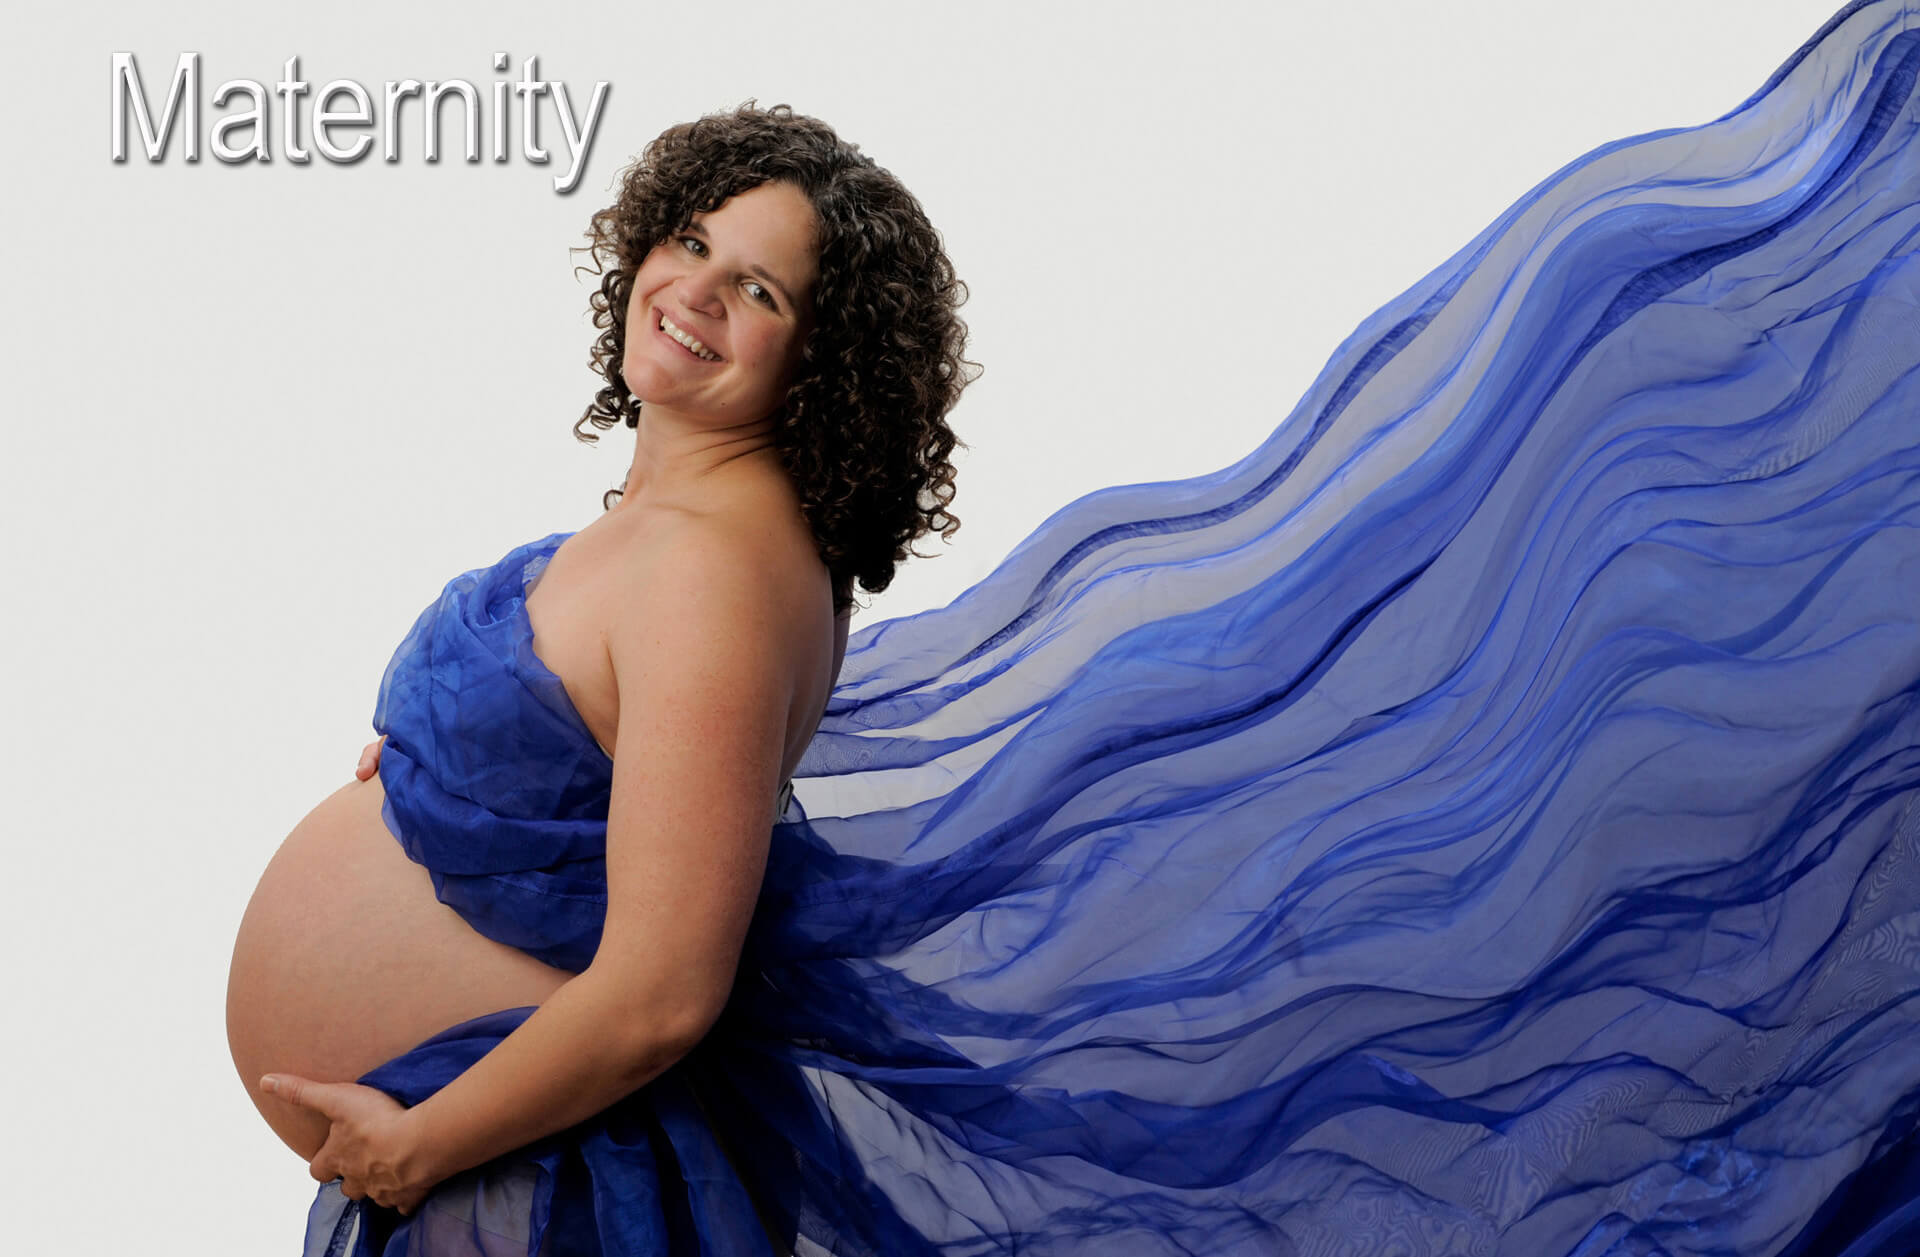 Voted best and favorite maternity photography by my clients, Marci Curtis features maternity photos photographed in creative ways either on location or in her studio in Troy, Michigan area.